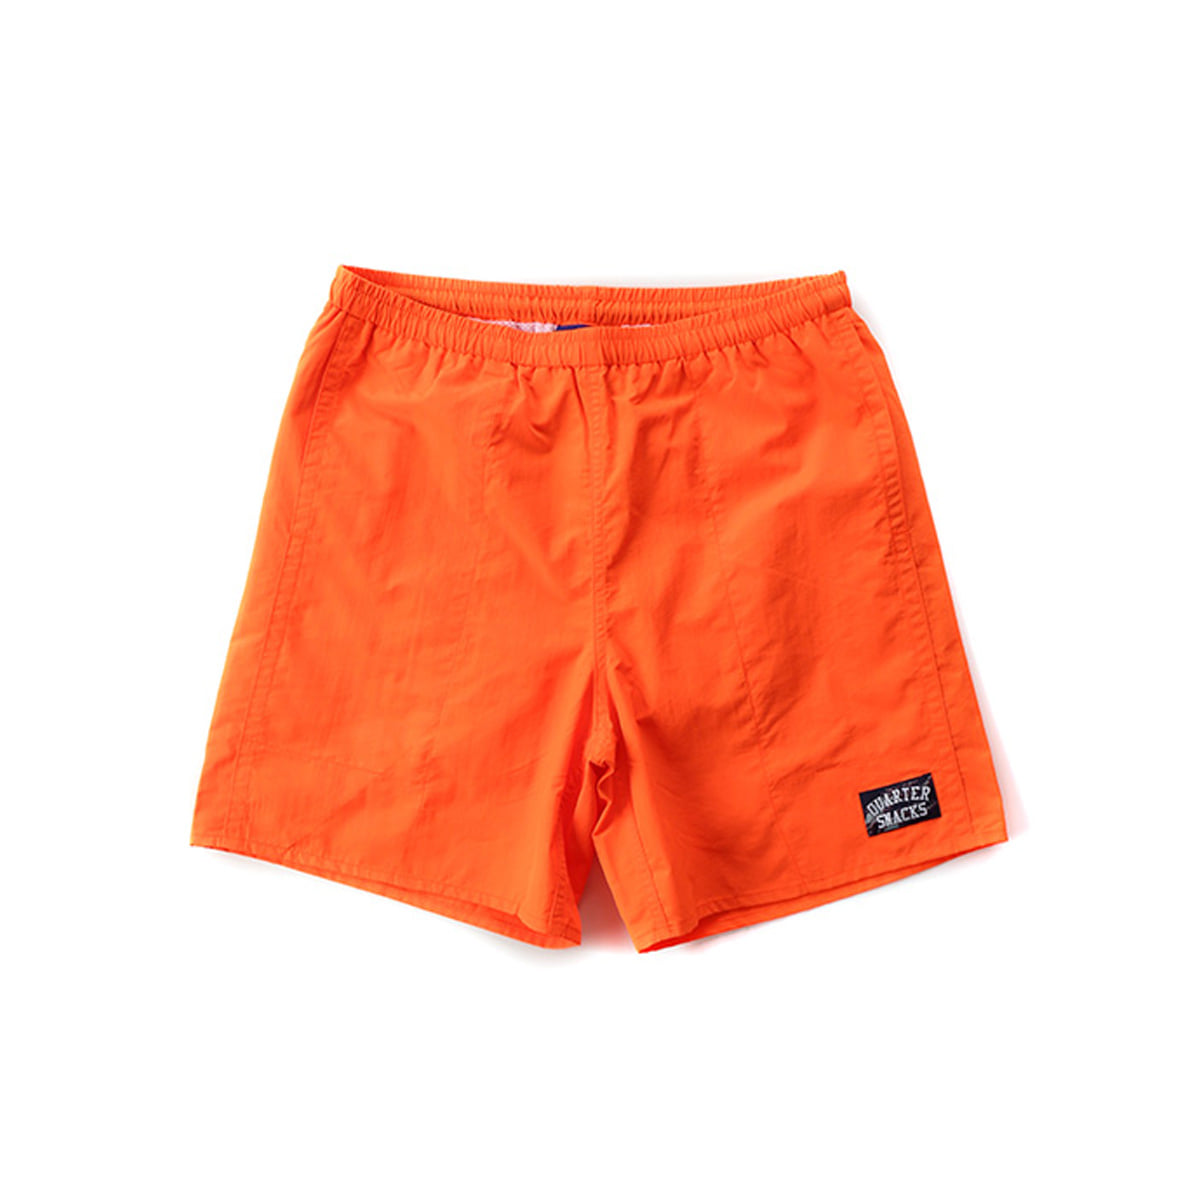 [QUARTERSNACKS] WATER SHORTS 'ORANGE'